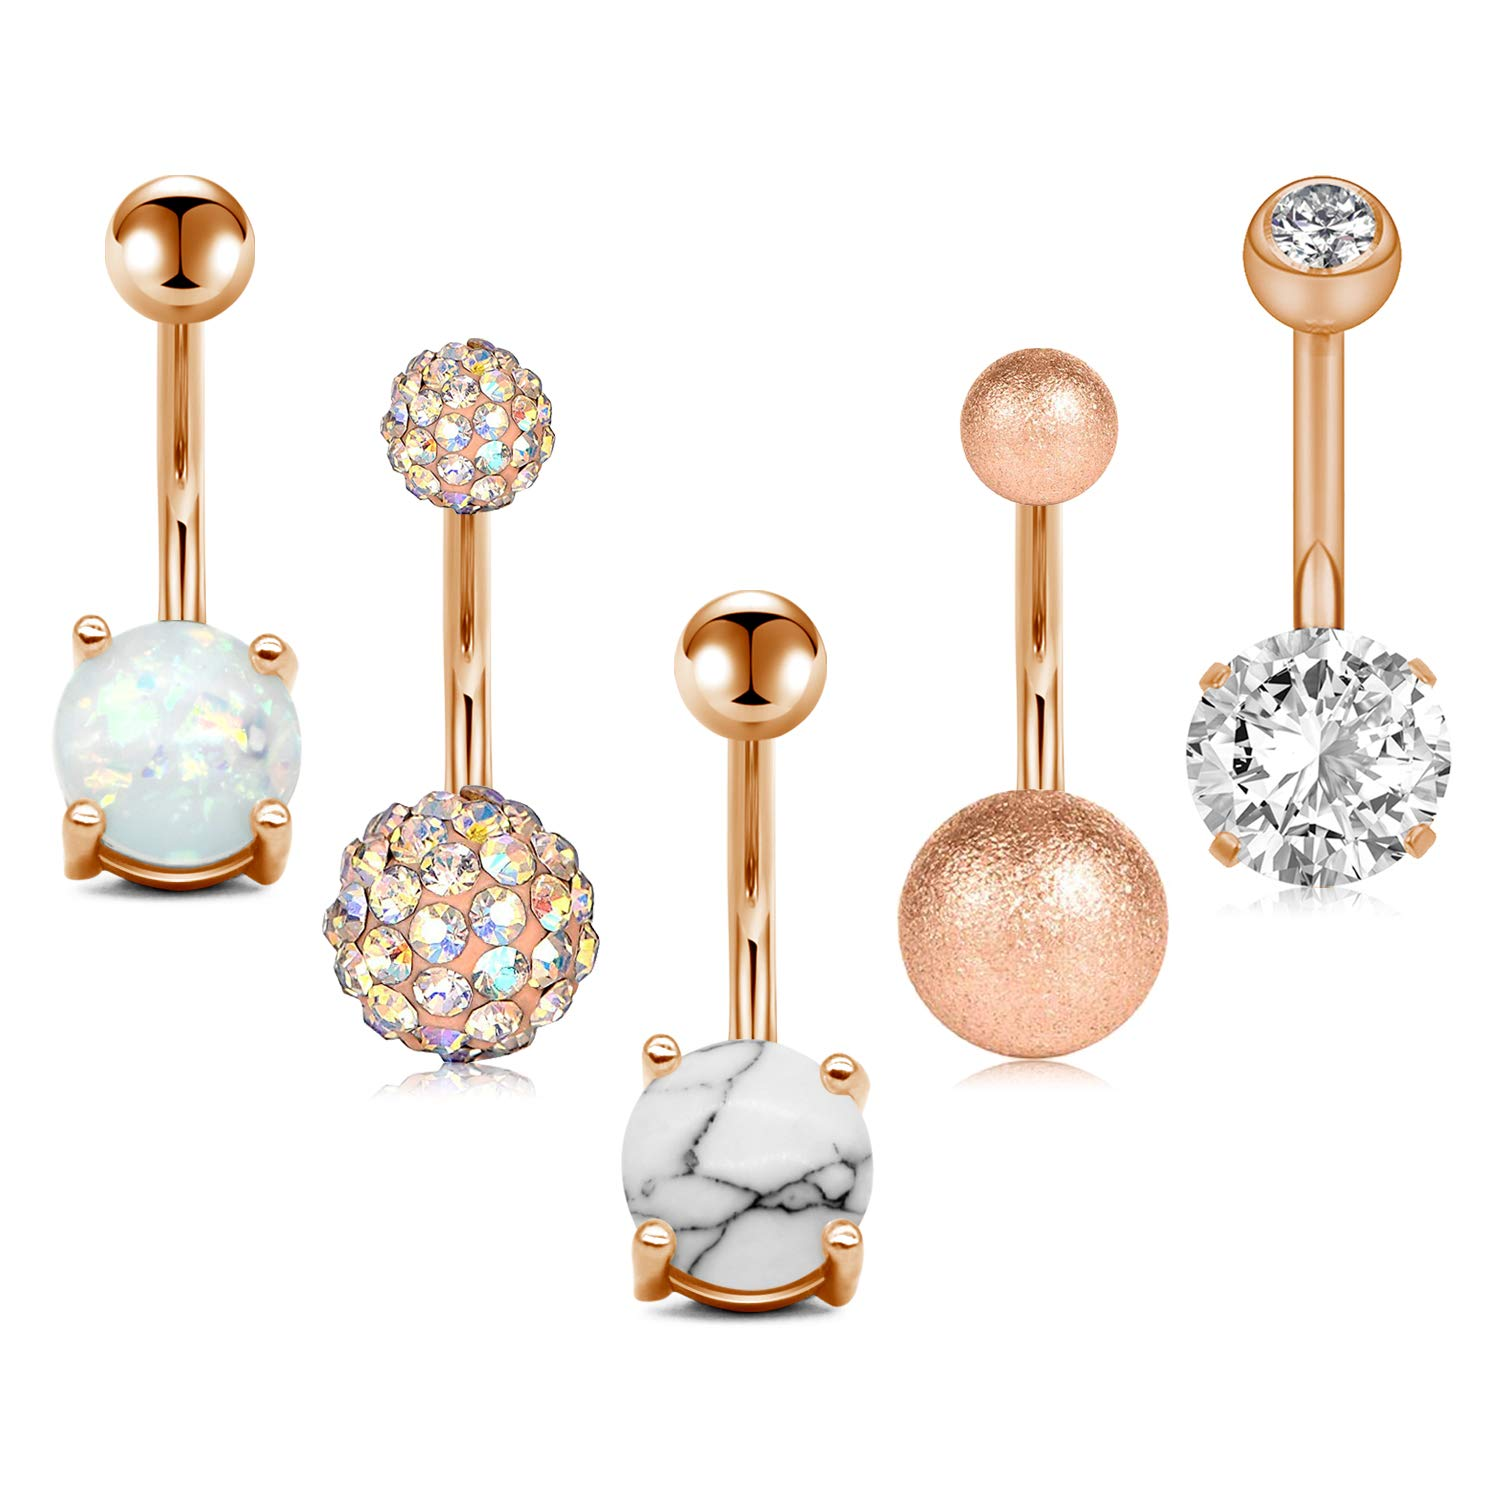 JFORYOU 5 Pcs Belly Button Rings Stainless Steel for Women Girls Navel Rings 5 Style 14G Navel Piercing Rose Gold Color Body Piercing Jewelry by JFORYOU